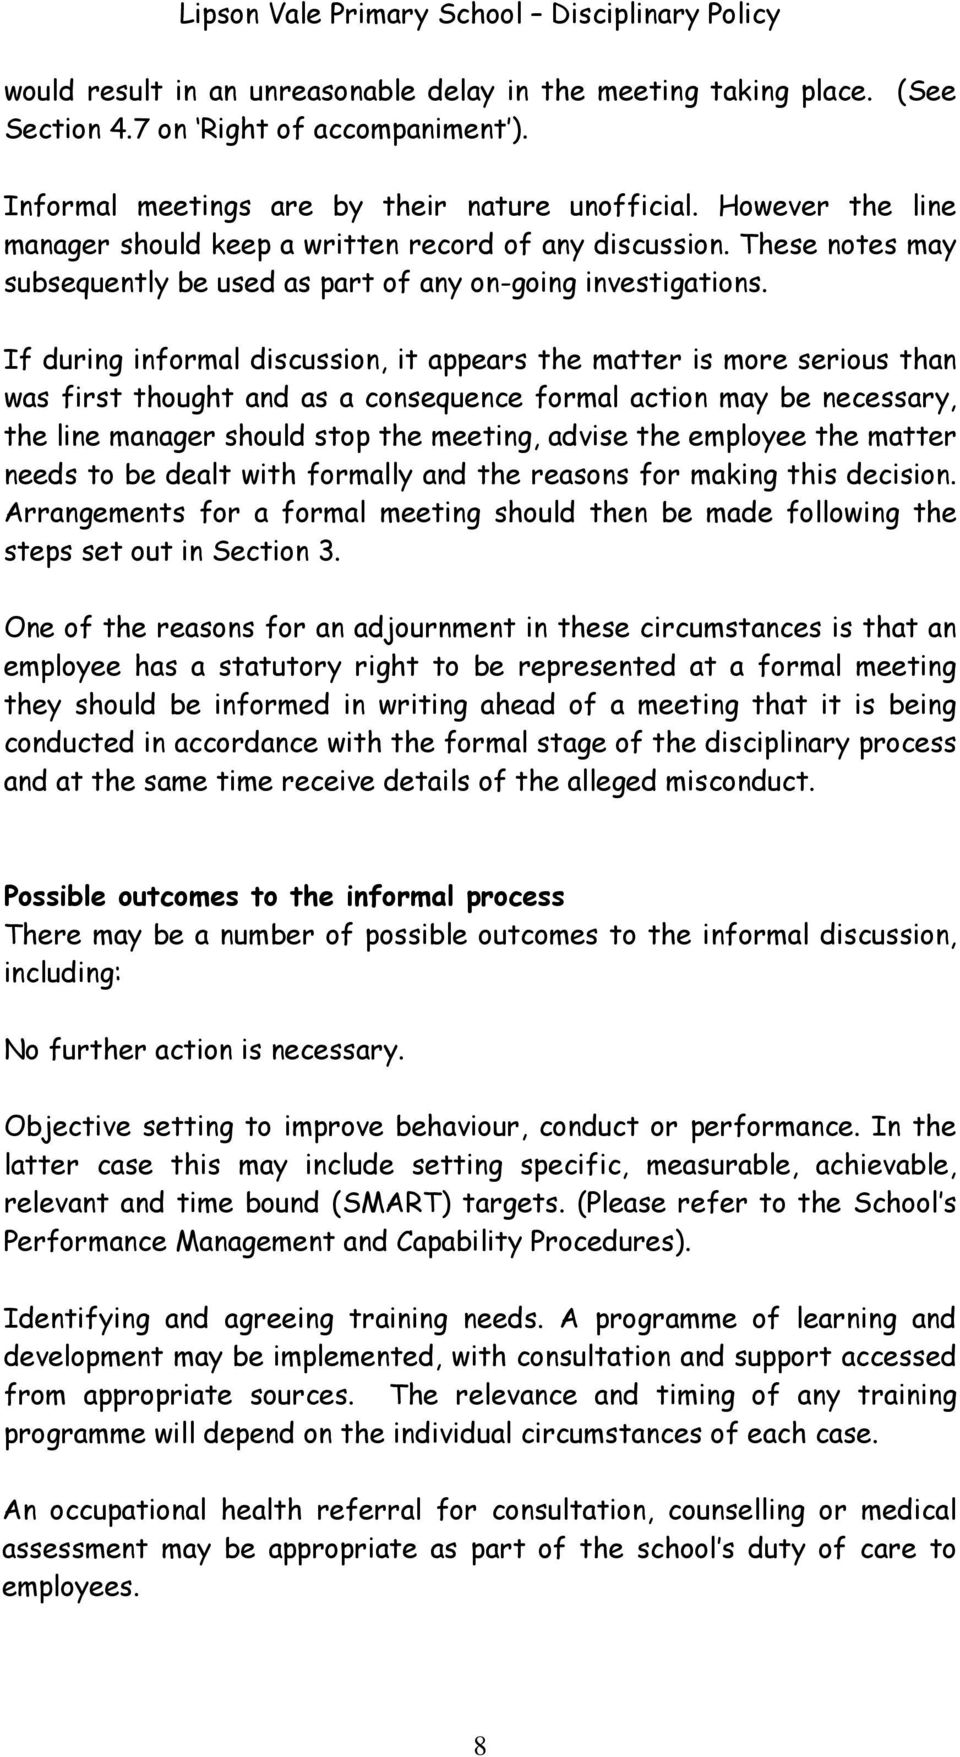 If during informal discussion, it appears the matter is more serious than was first thought and as a consequence formal action may be necessary, the line manager should stop the meeting, advise the